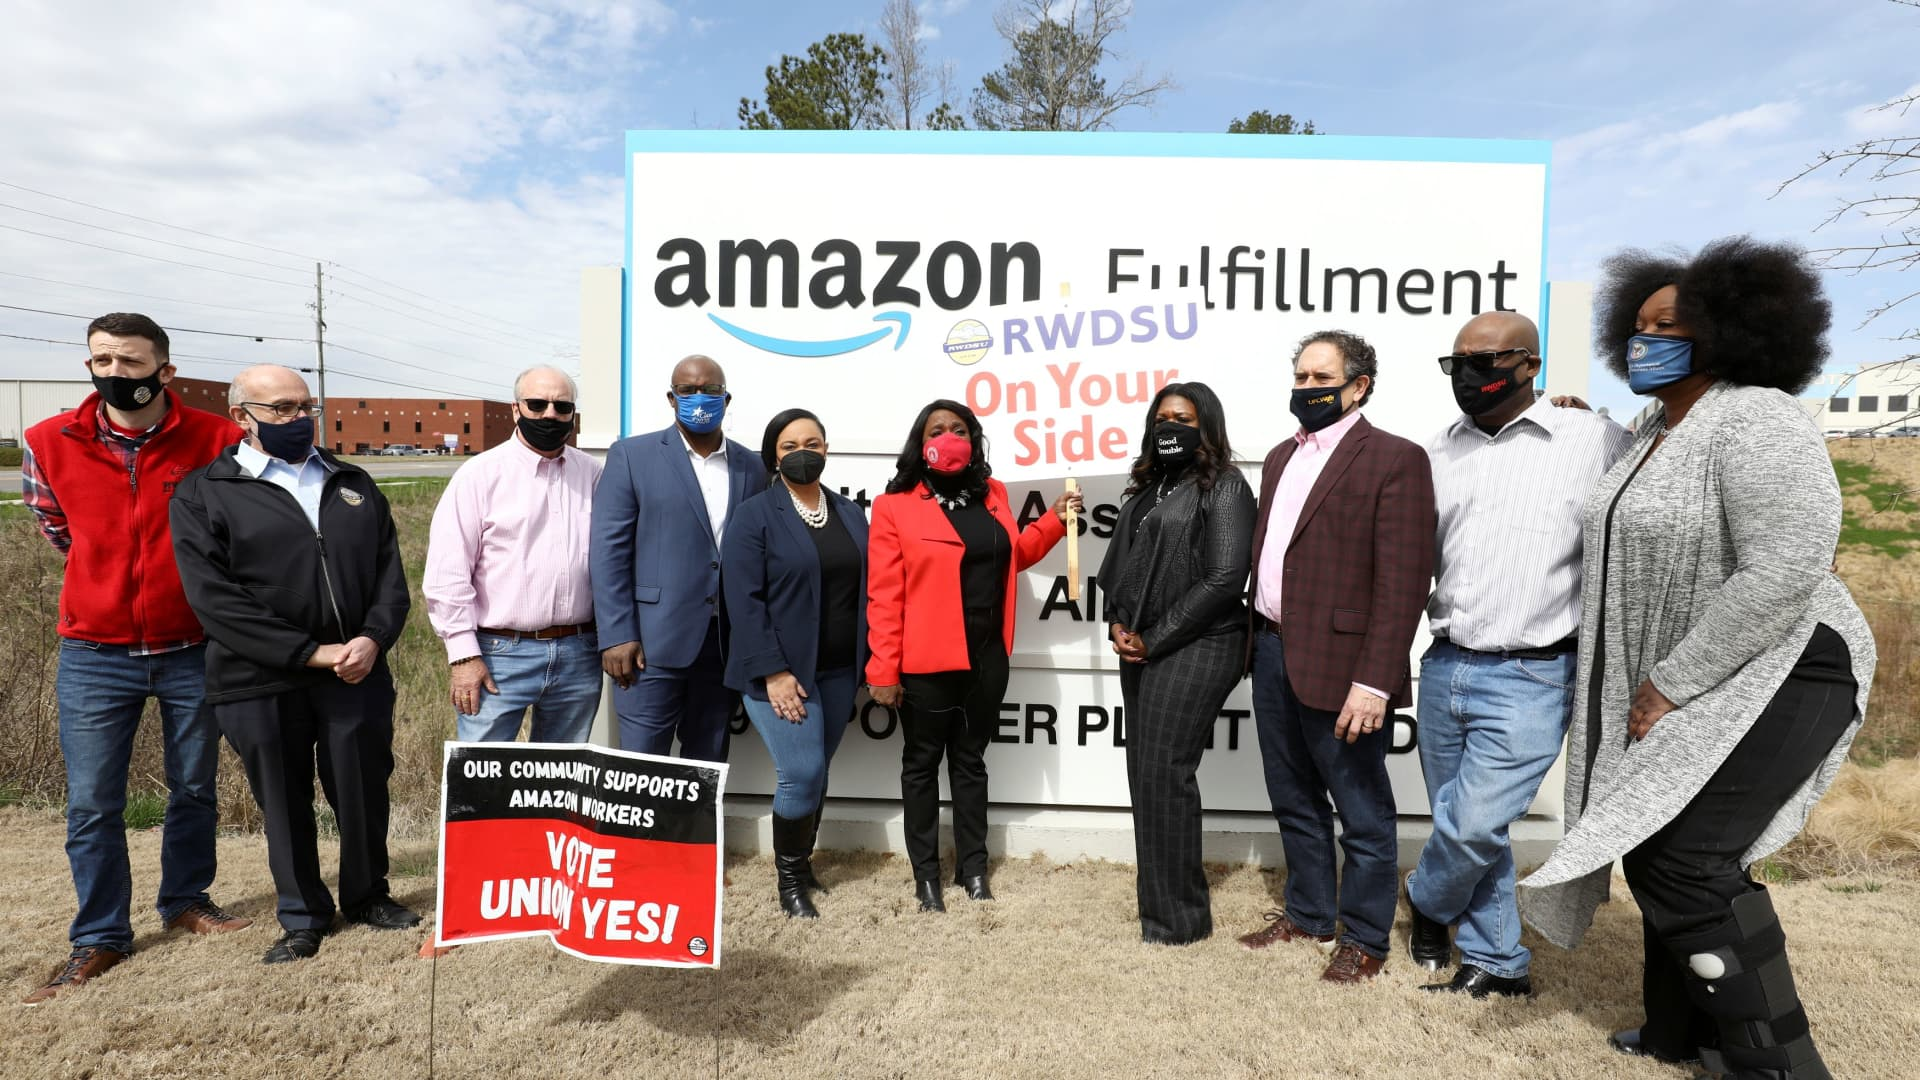 Rep. Nikema Williams, Rep. Jamaal Bowman, Rep. Terri Sewell, Rep. Cori Bush, Rep. Andy Levin and RWDSU President Stuart Appelbaum pose for a picture at the entrance to Amazon facility as they arrive as members of a congressional delegation to show their support for workers who will vote on whether to unionize, in Birmingham, Alabama, U.S. March 5, 2021.